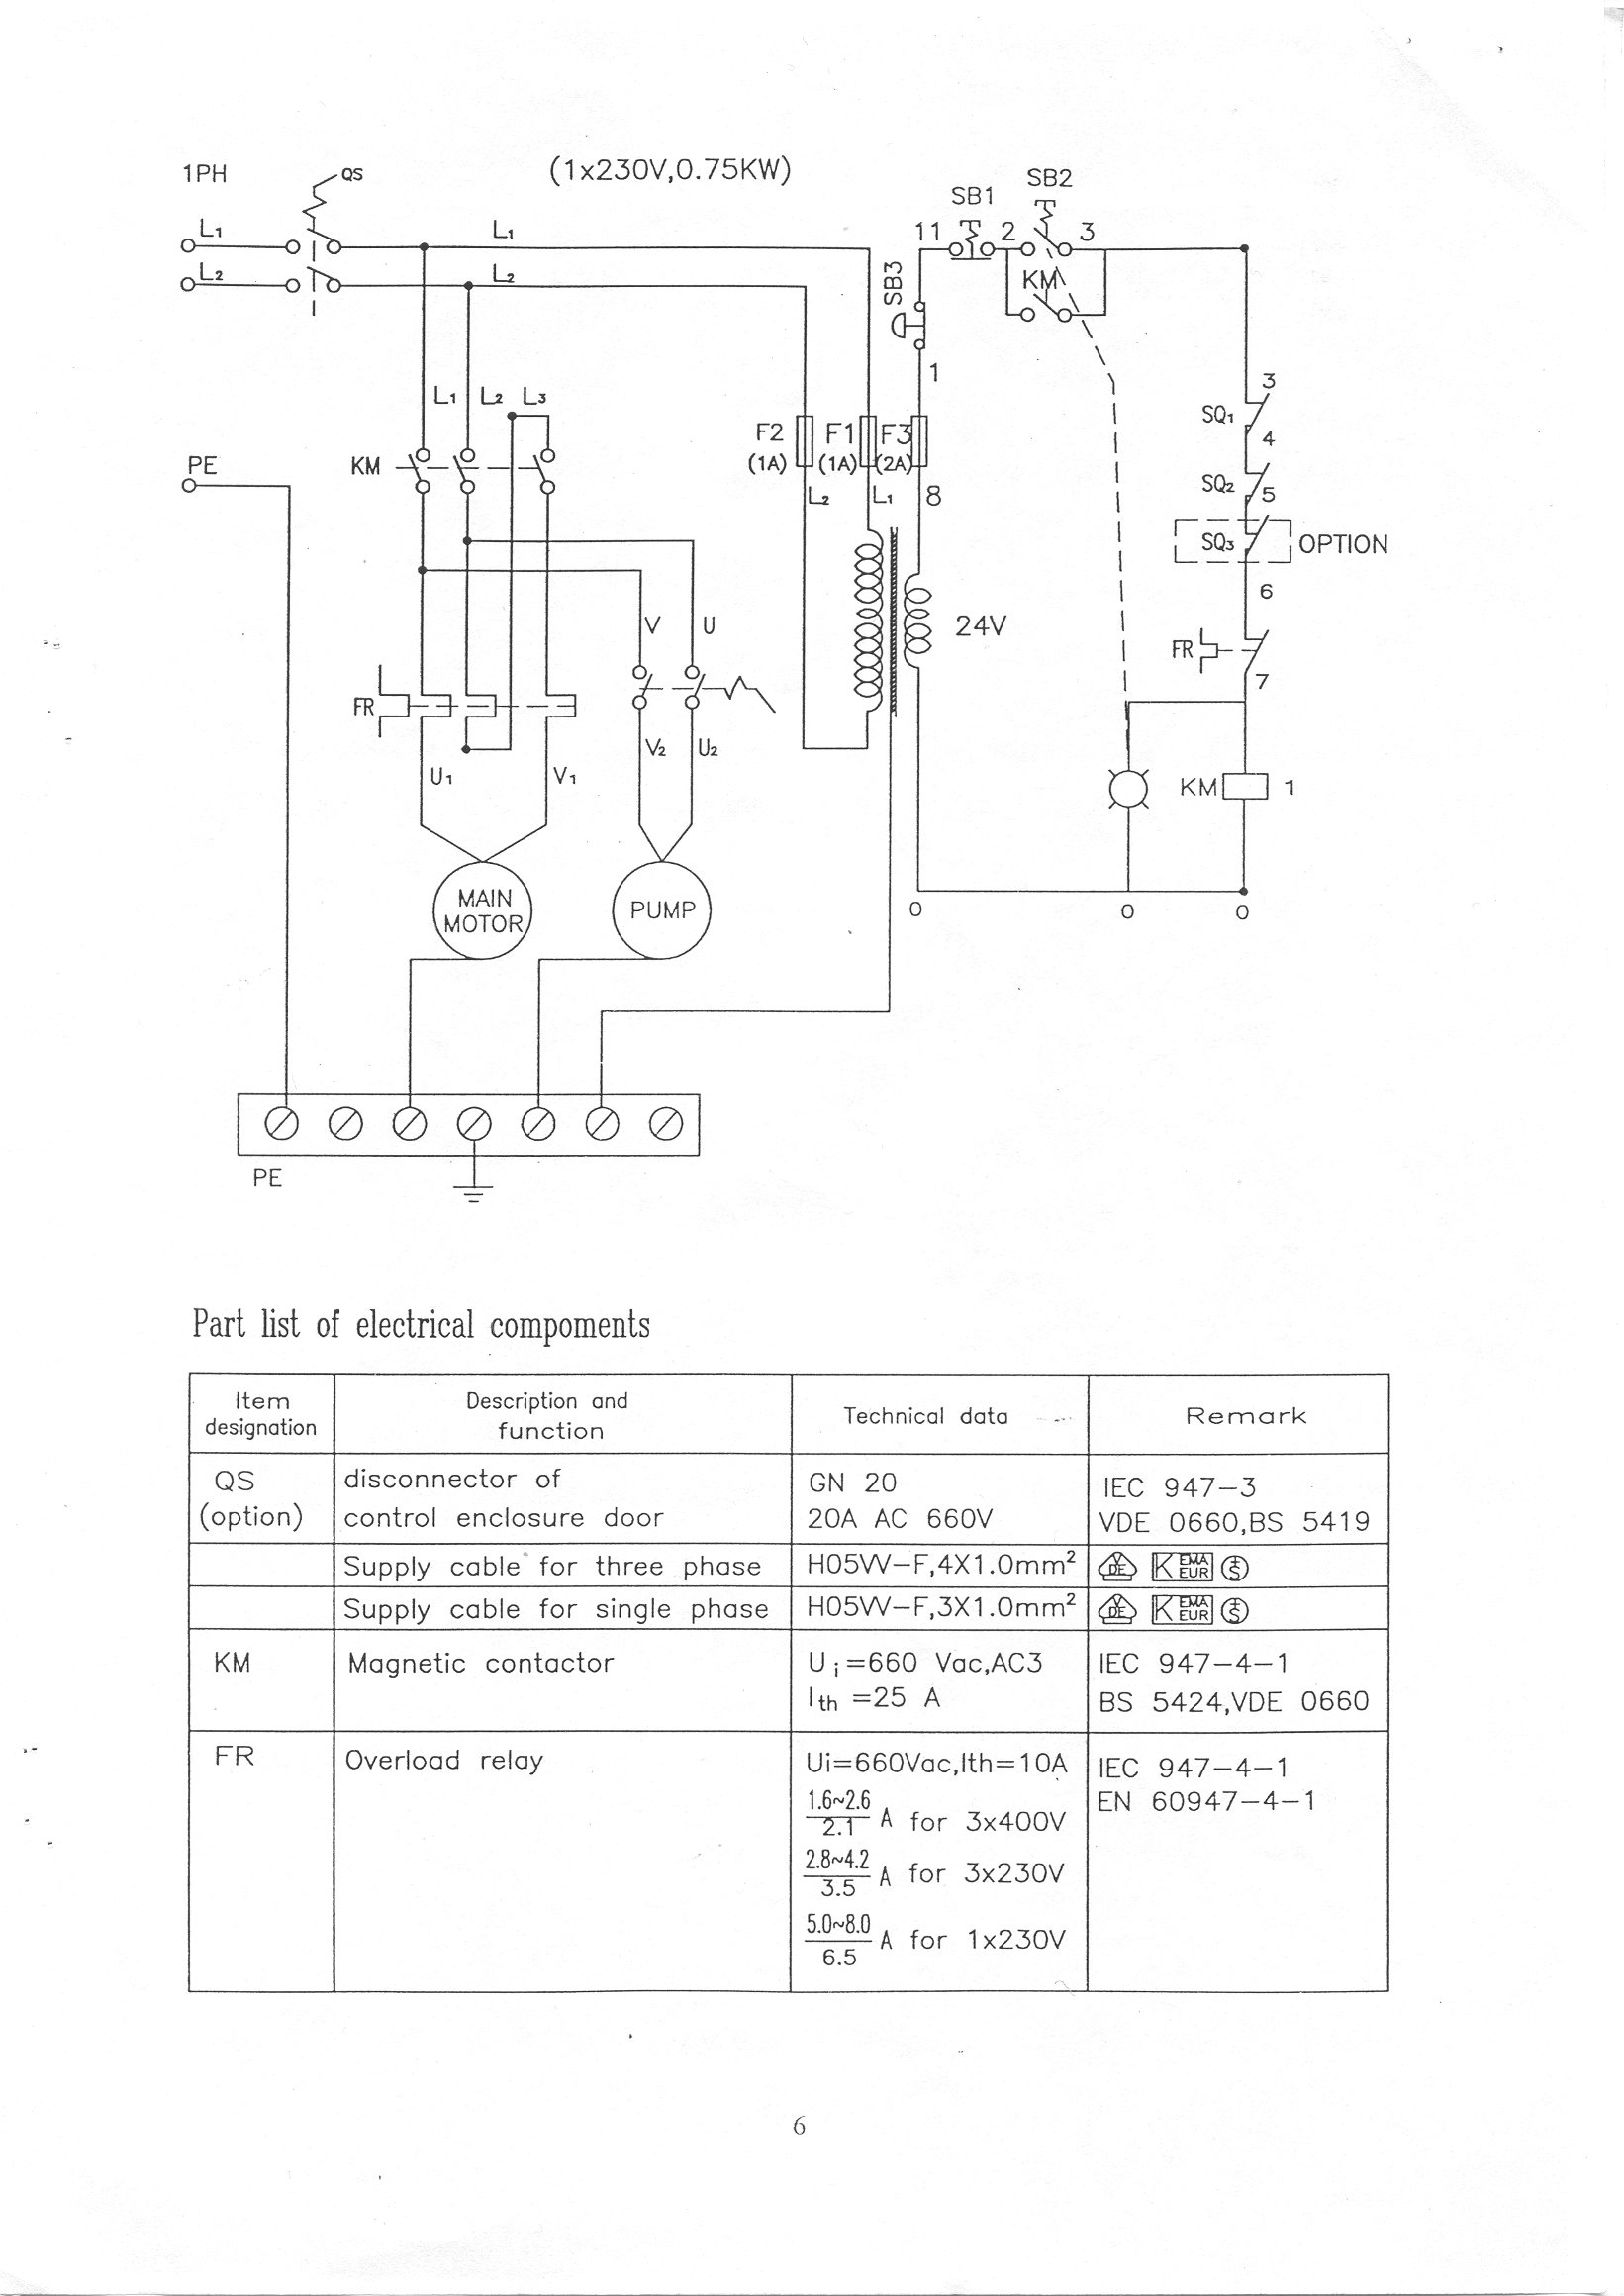 sip spot welder wiring diagram 7 volt transformer 07786 12 quot metal cutting bandsaw white switch box